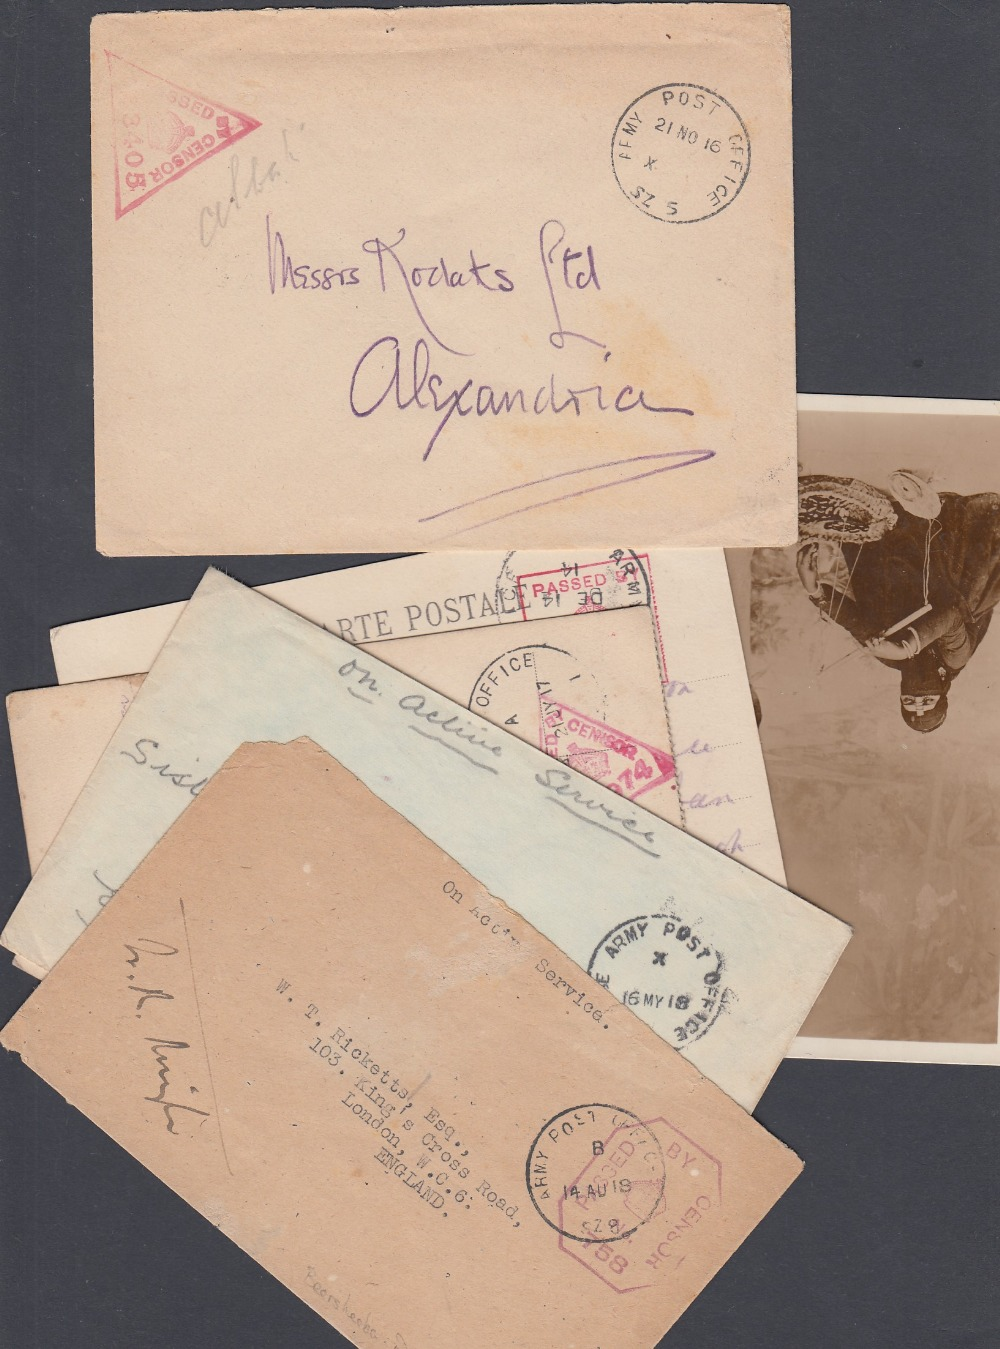 STAMPS POSTAL HISTORY EGYPT, seven WWI covers or cards all with Army Post Office datestamps,